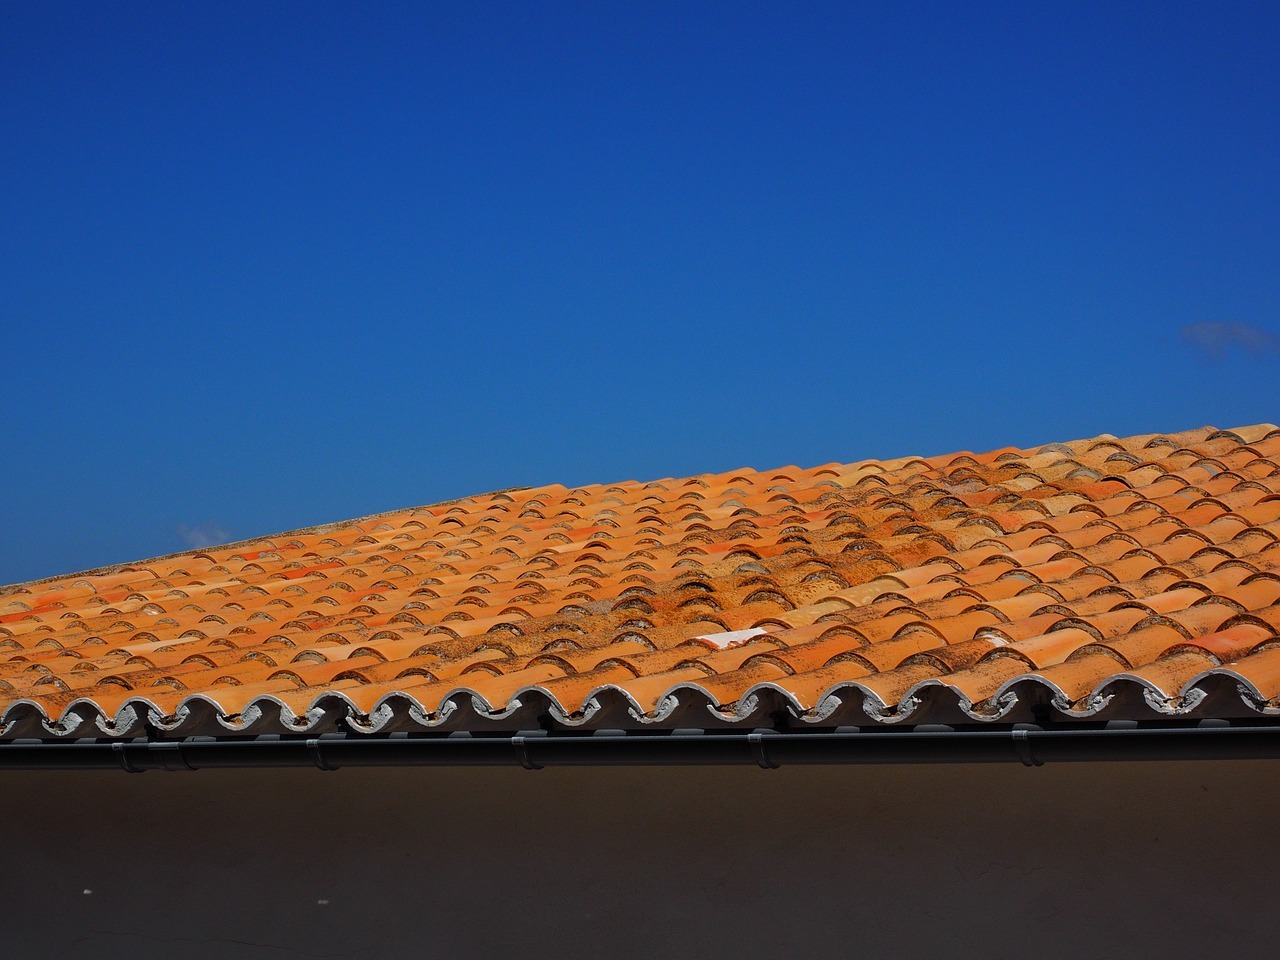 roof-1090608_1280